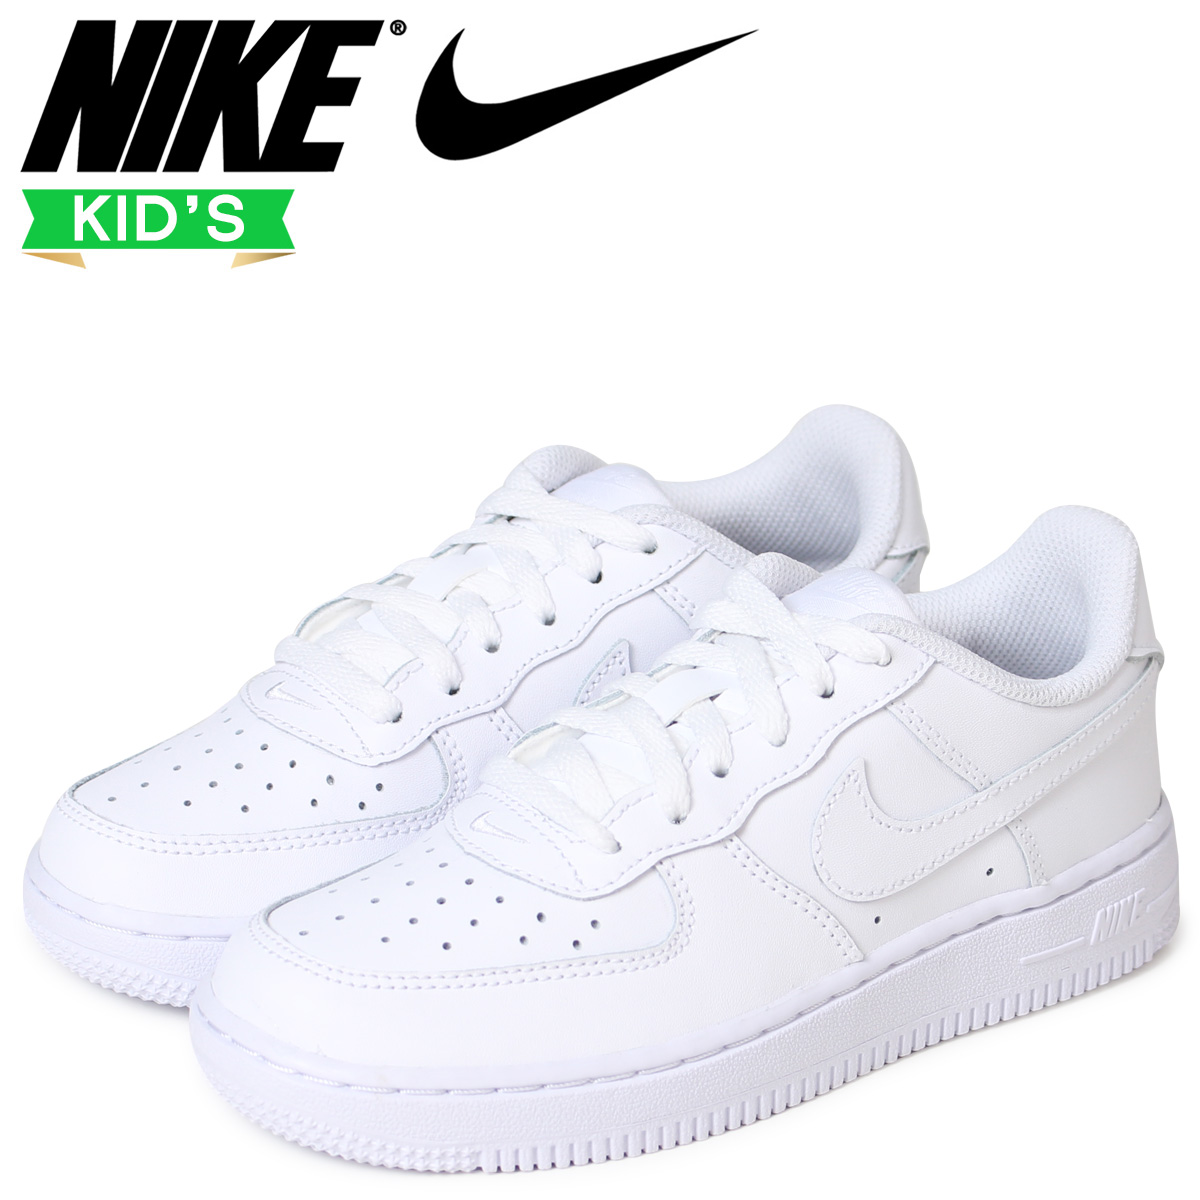 48a175ed693fd NIKE Nike air force 1 kids sneakers AIR FORCE 1 PS 314,193-117 white ...